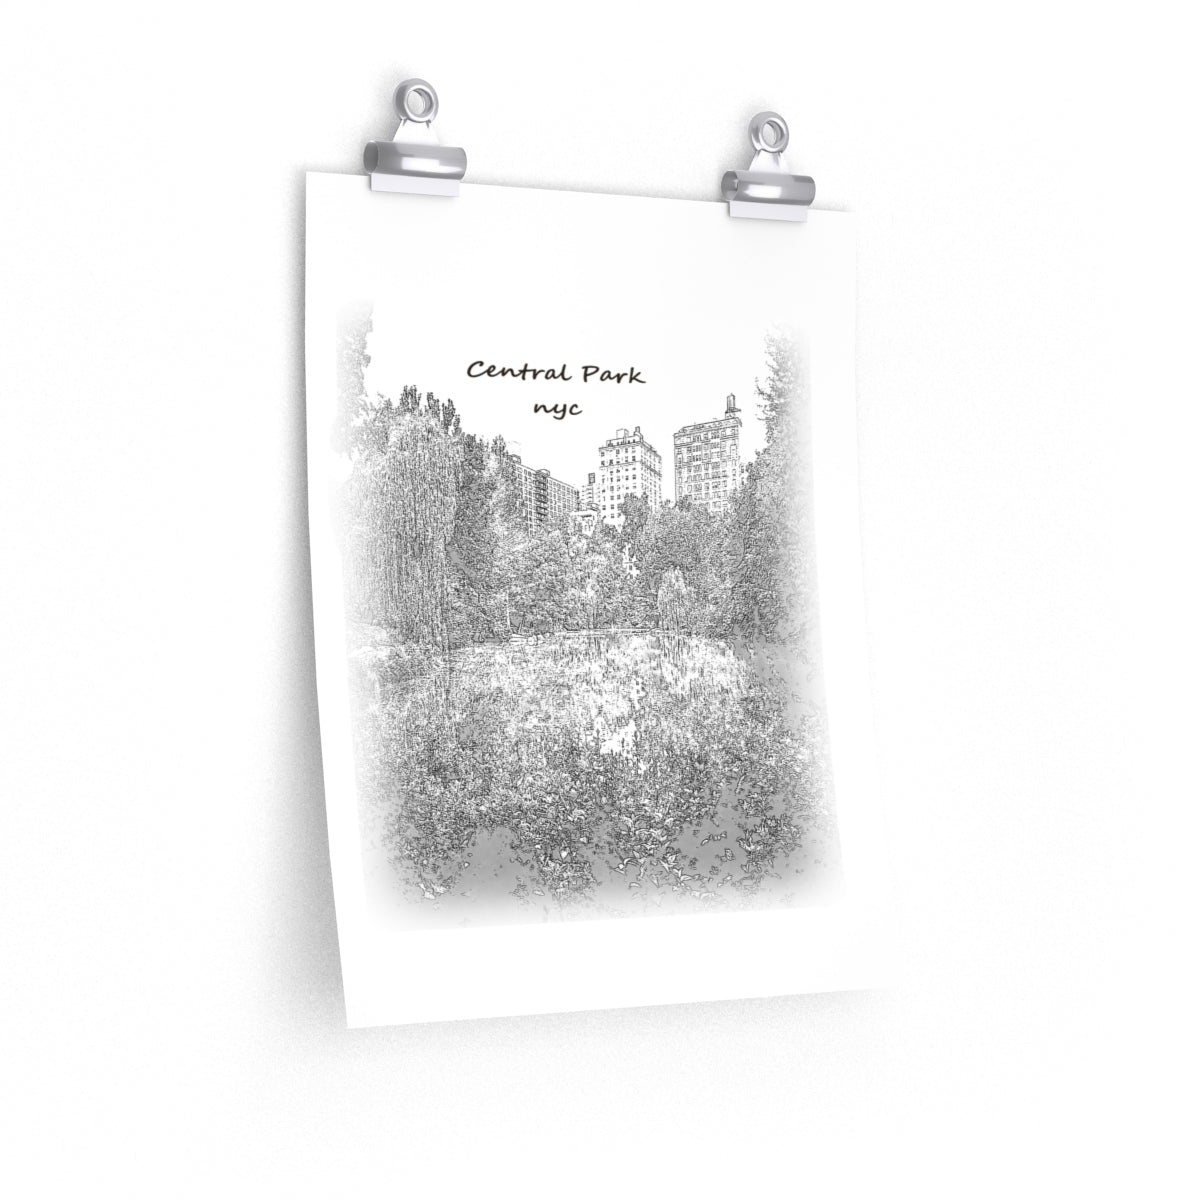 Central Park, New York City Poster - FORYOURCART